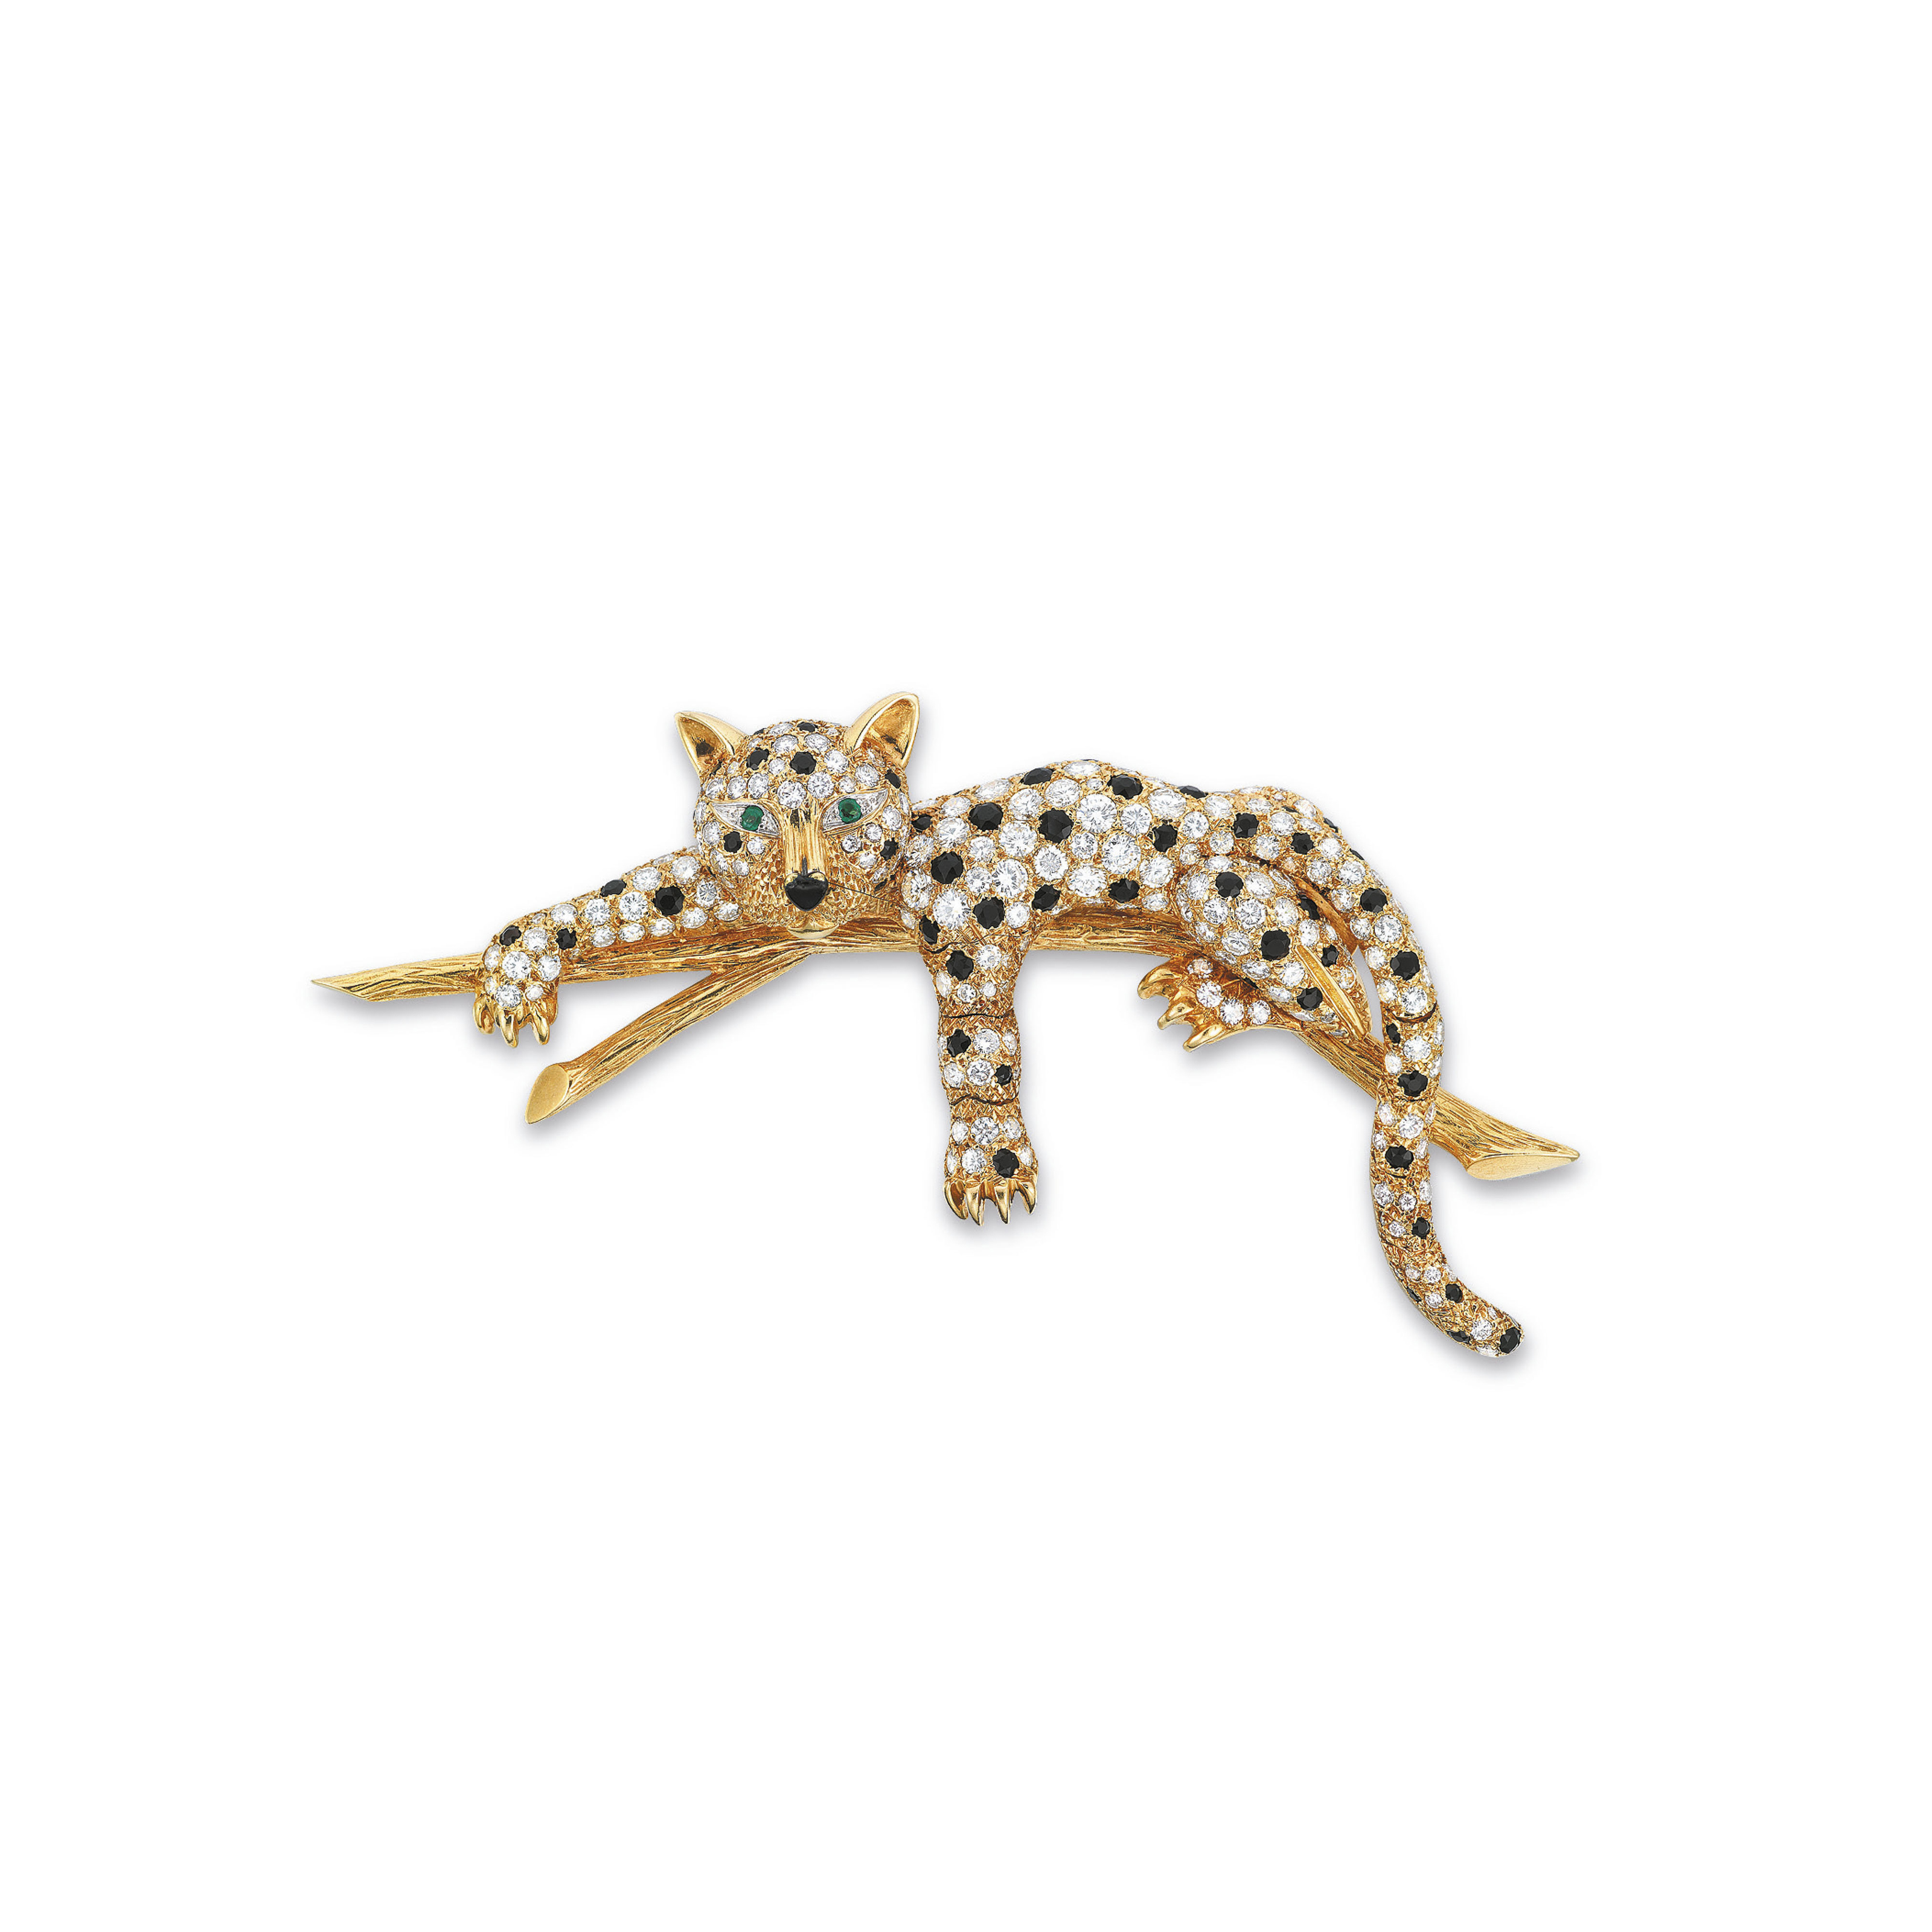 A DIAMOND, ONYX AND EMERALD BROOCH, BY VAN CLEEF & ARPELS